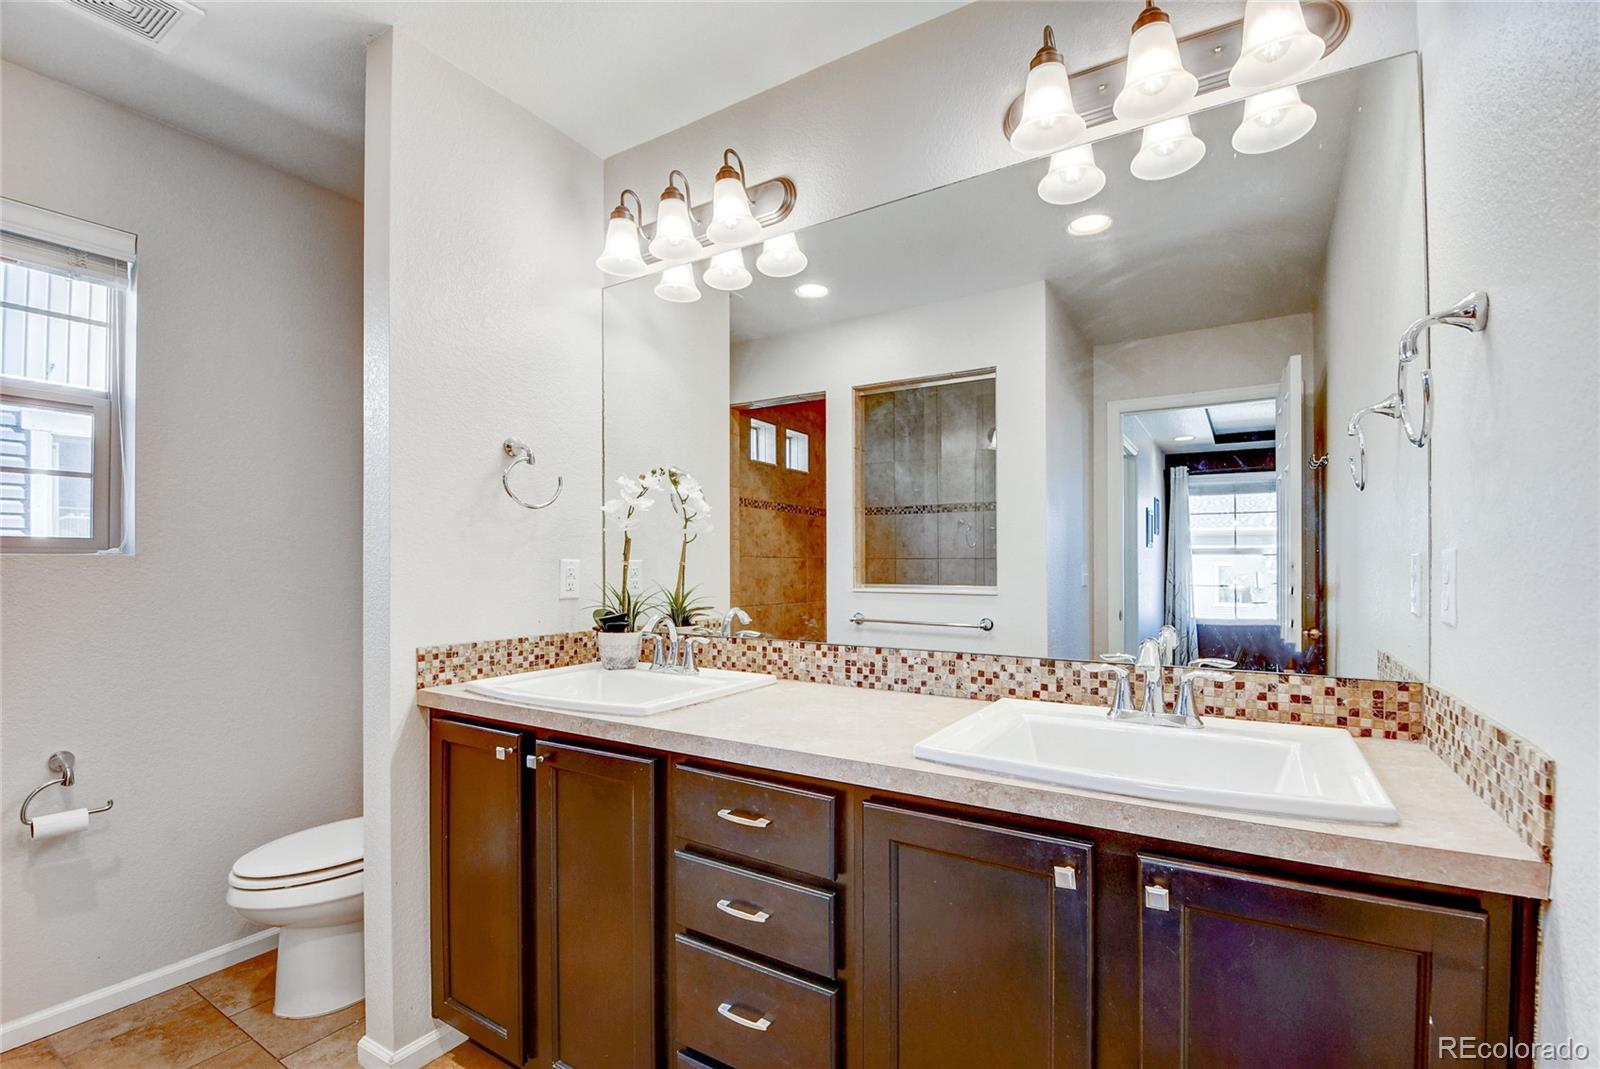 MLS# 3270712 - 24 - 4953 Cathay Court, Denver, CO 80249